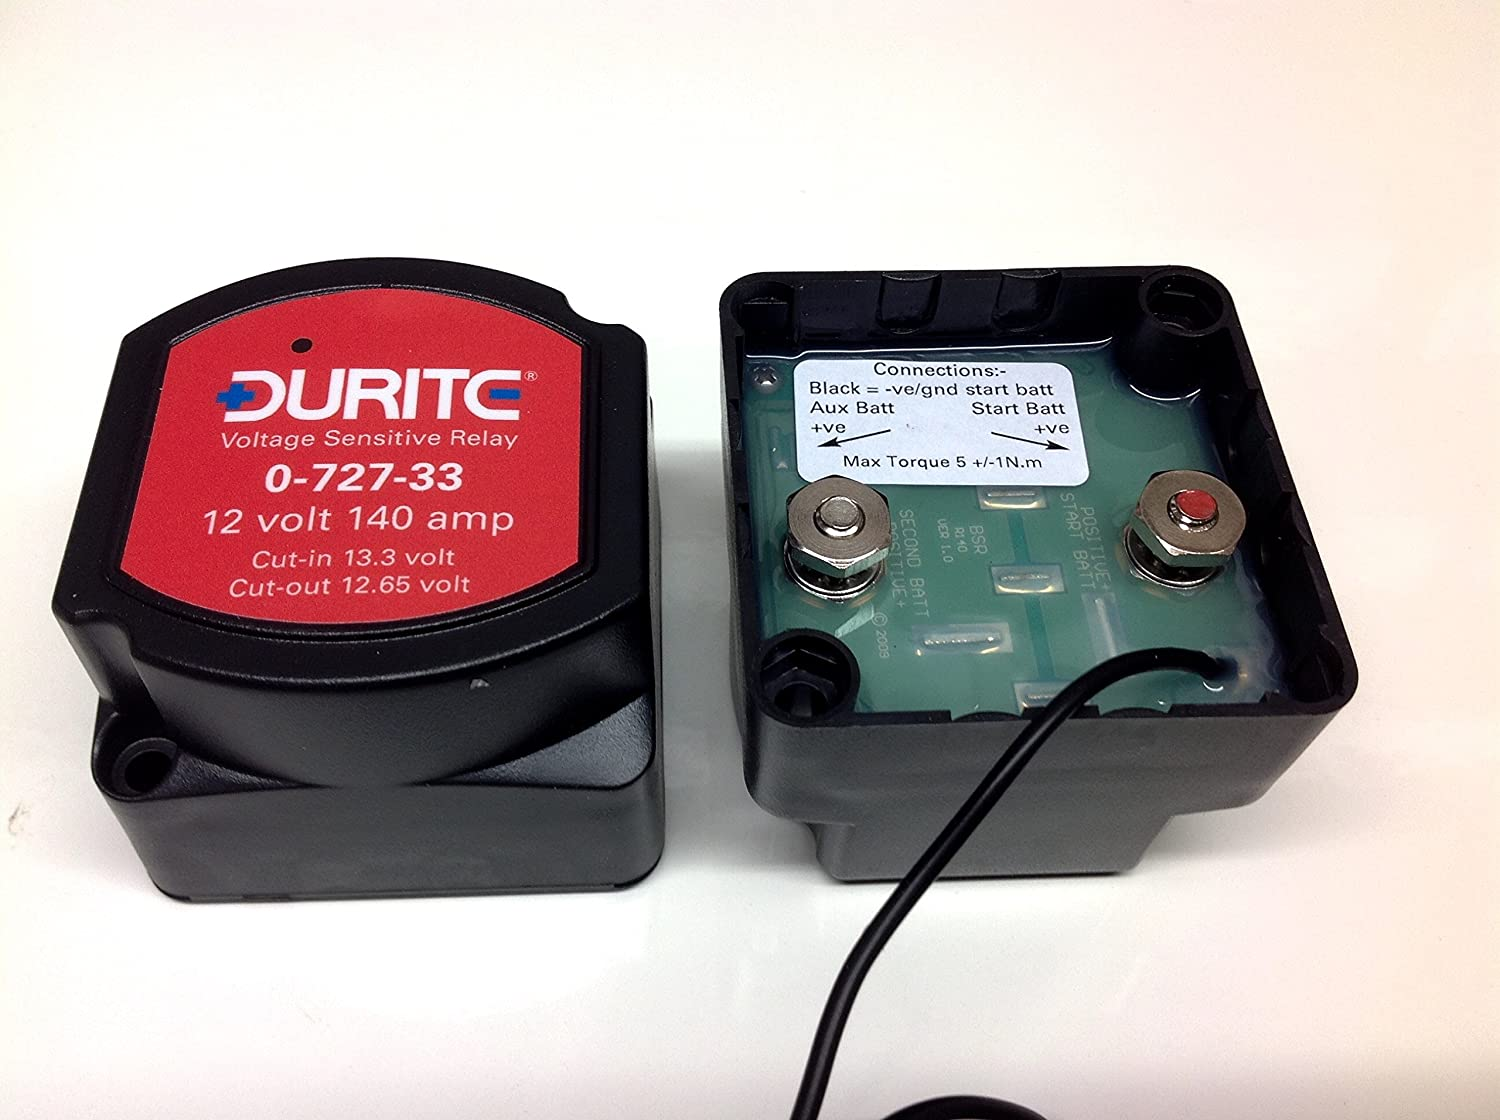 12V 140amp Durite 0-727-33 voltage sensitive/intelligent Split Charge Relay:  Amazon.co.uk: Car & Motorbike